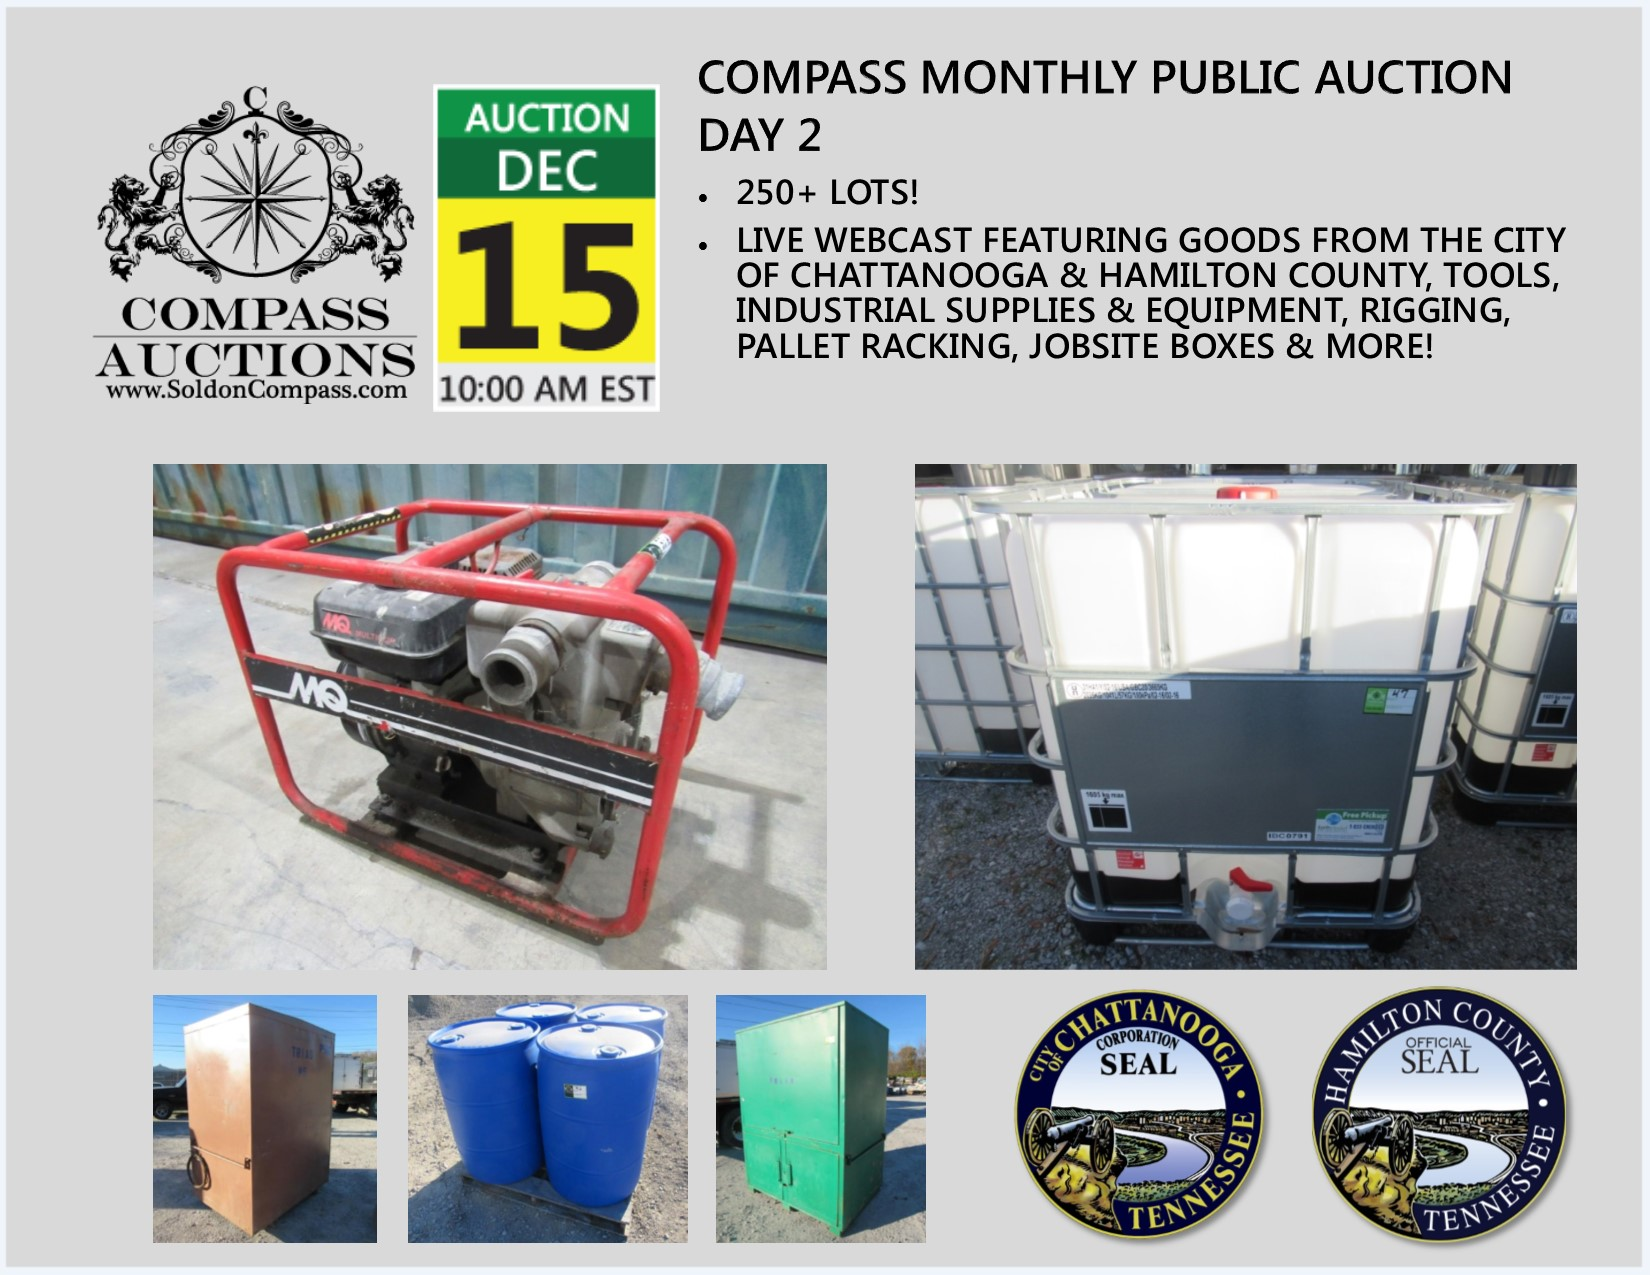 Compass Monthly Public Auction Day 2 December 15